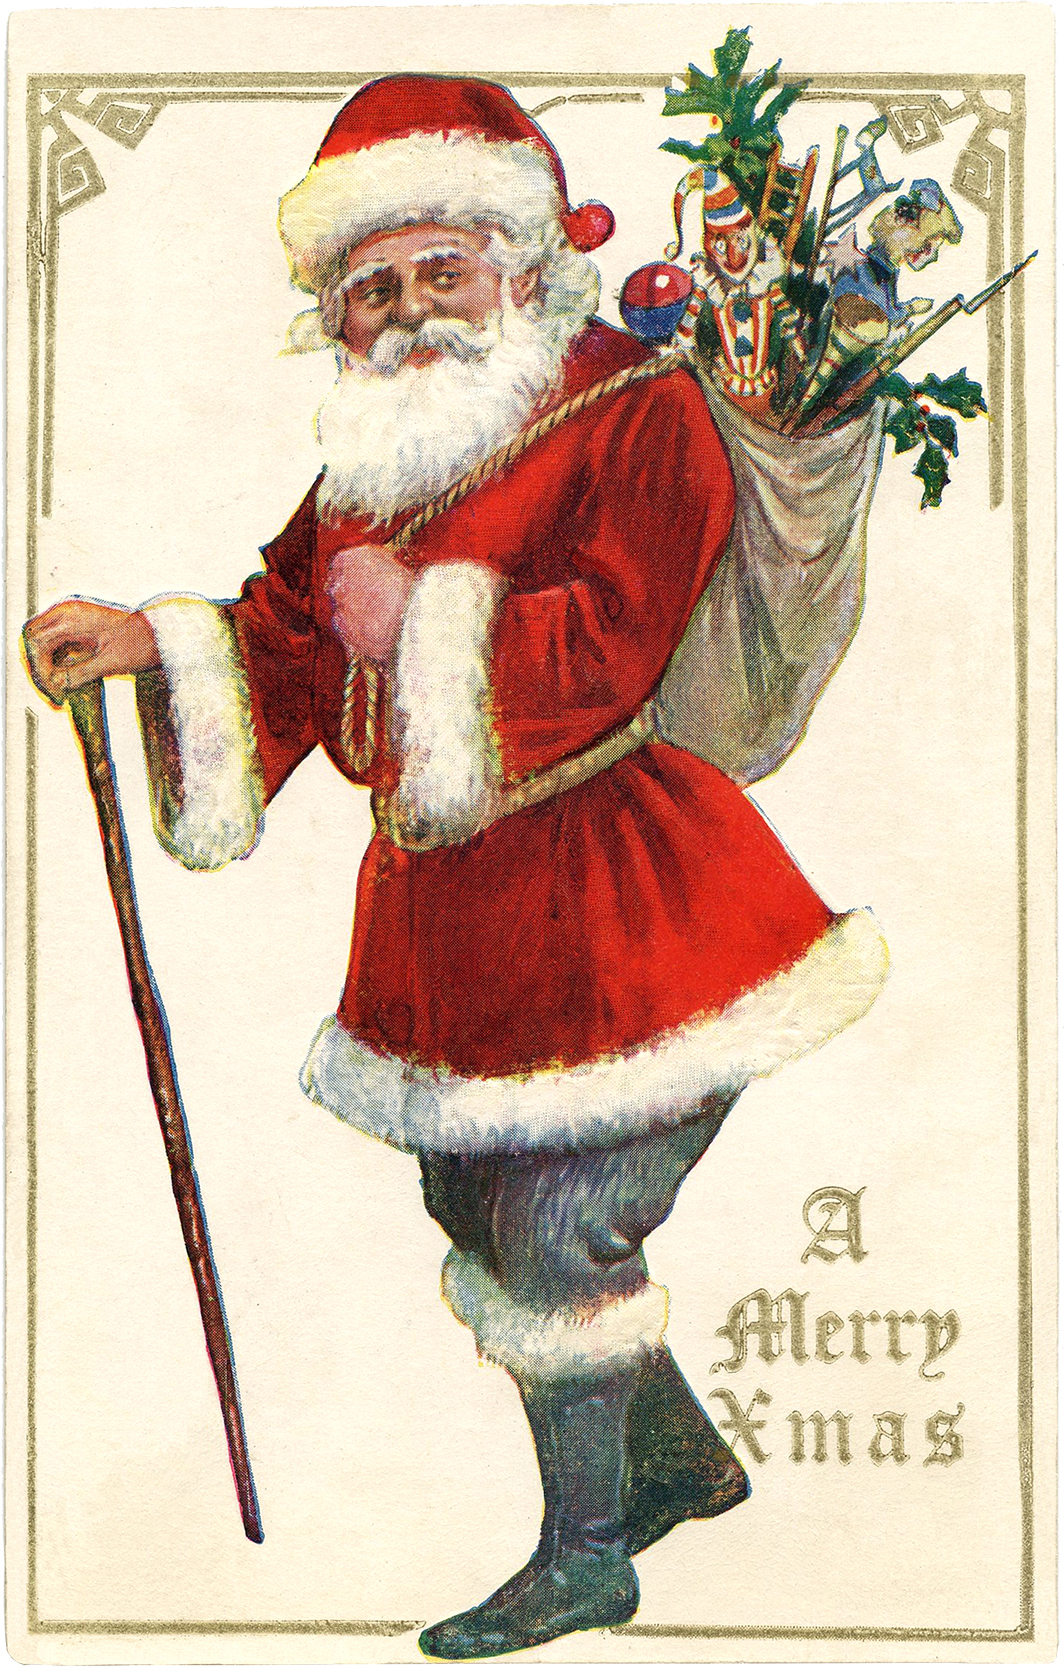 Antique Santa With Cane Image